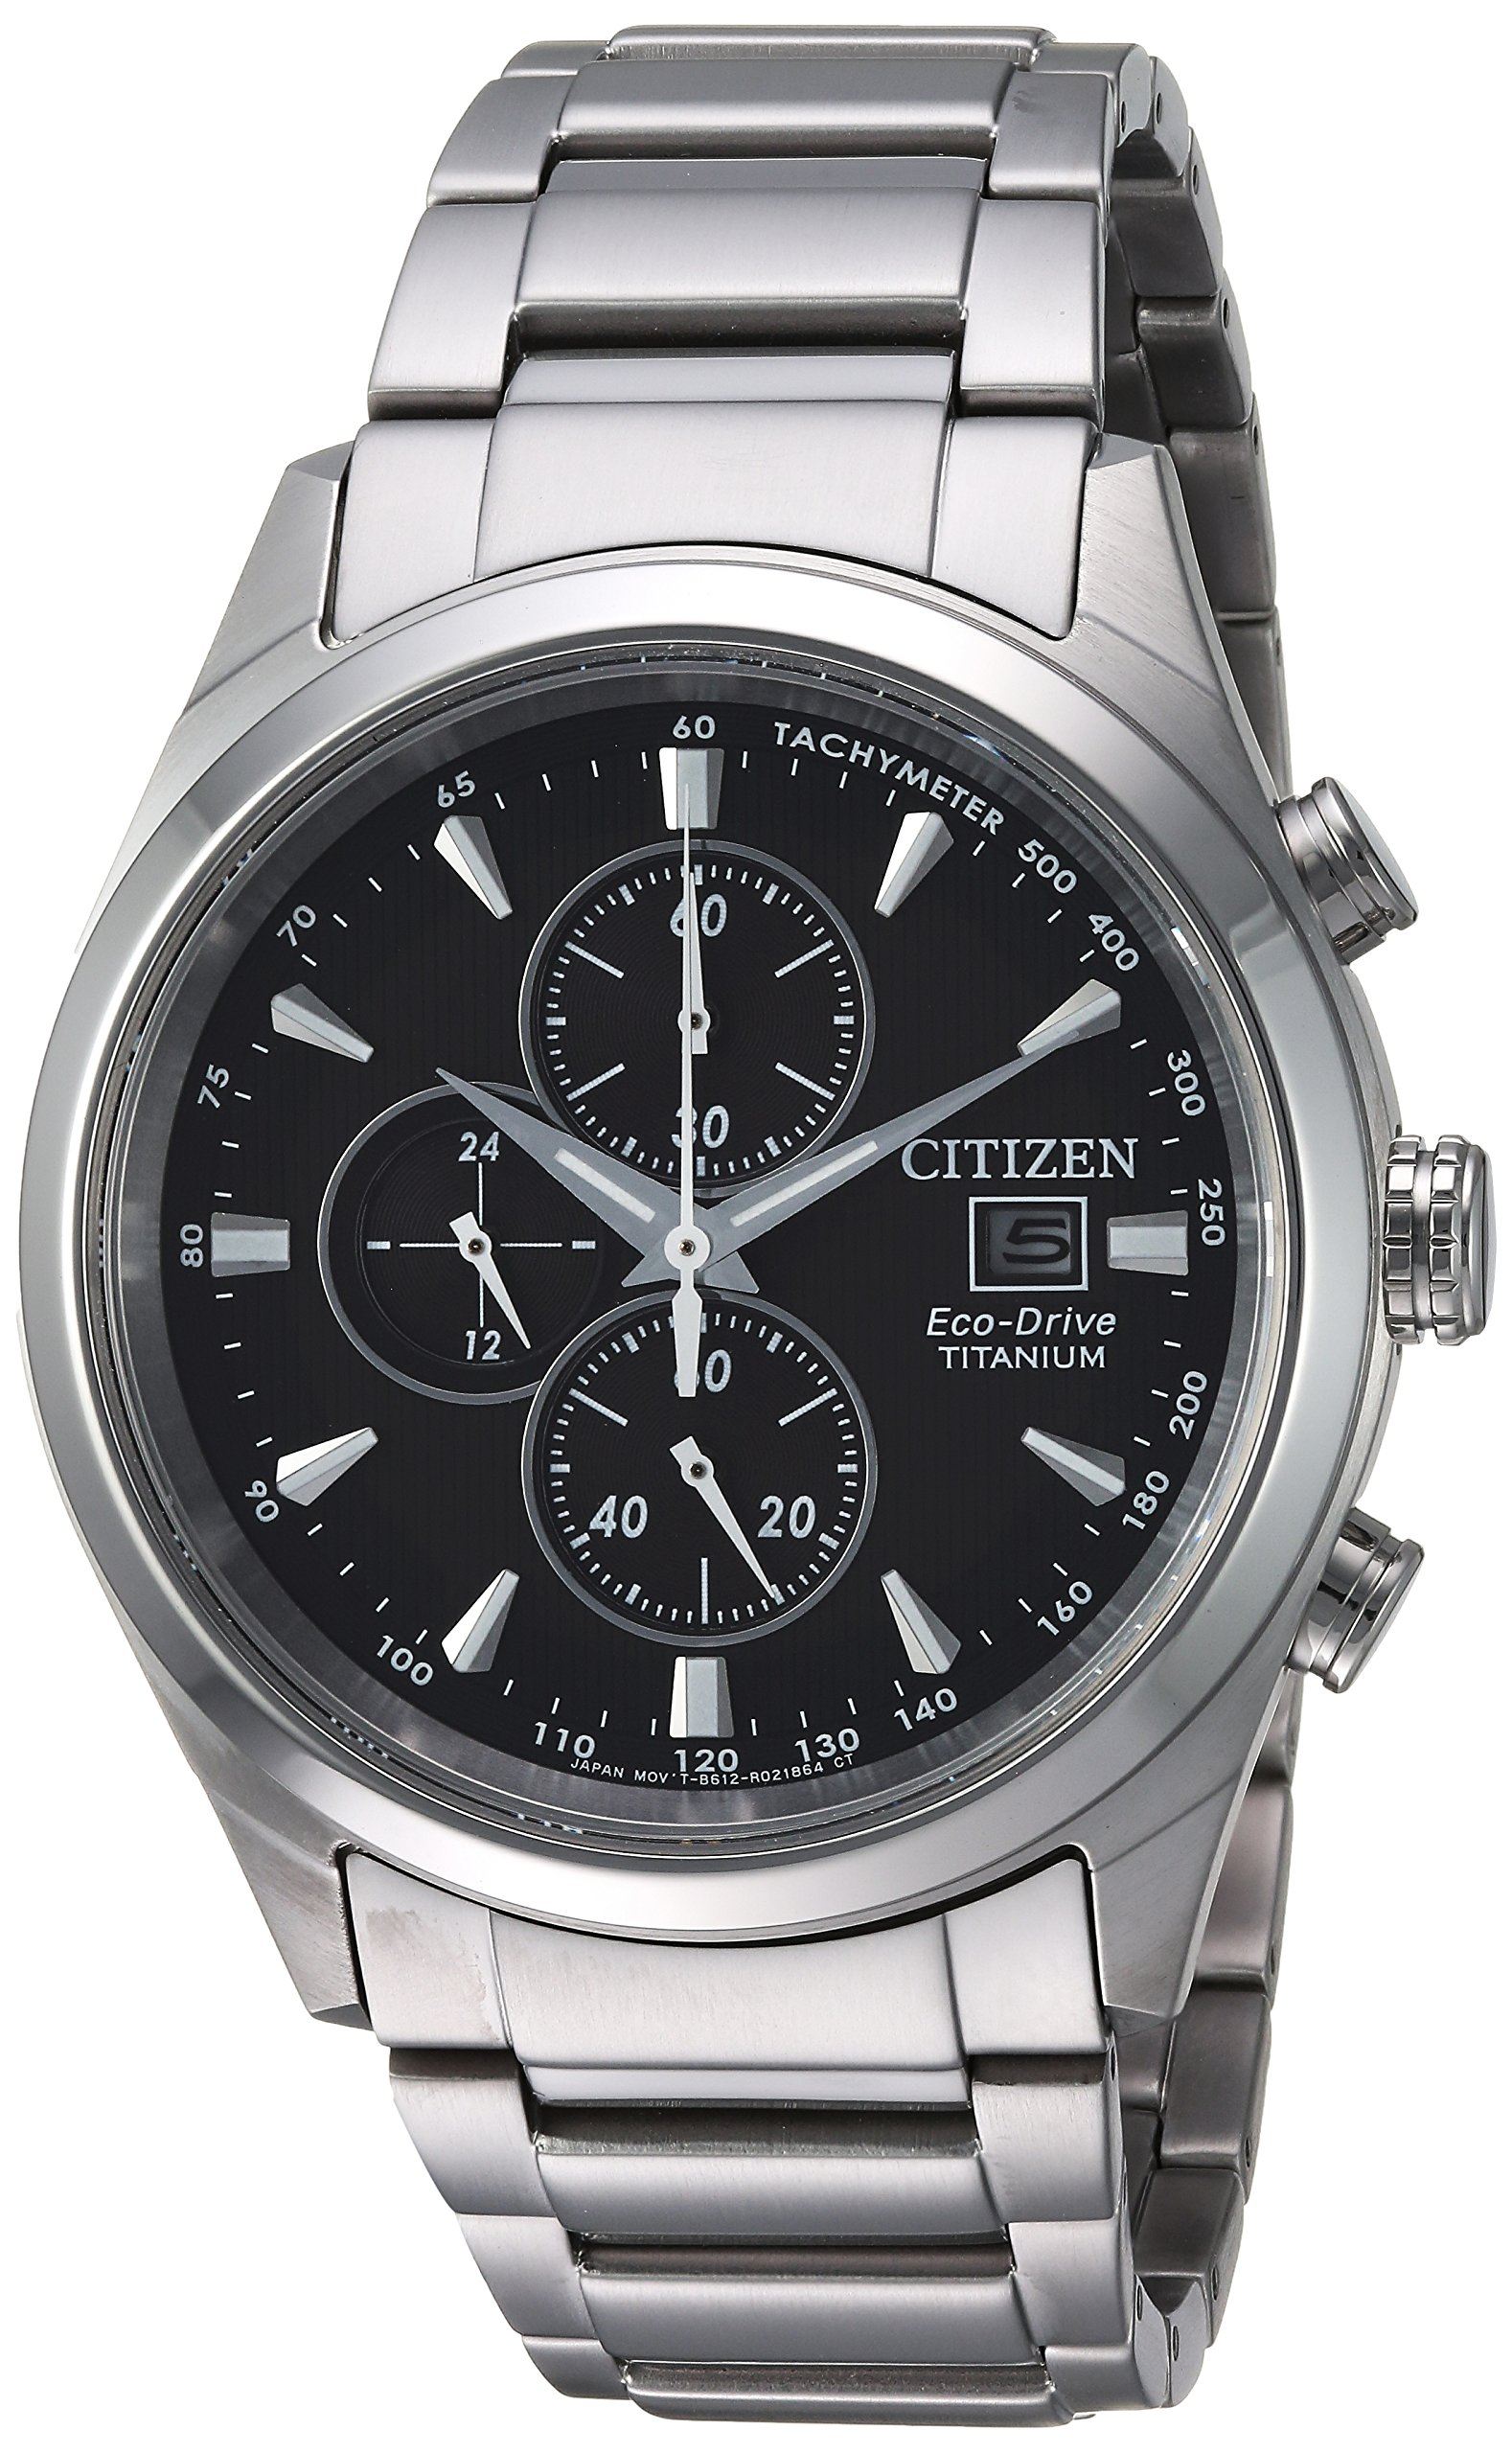 Citizen Men's Silver-Toned 'Eco-Drive' Quartz Titanium Casual Watch (Model: CA0650-58E)